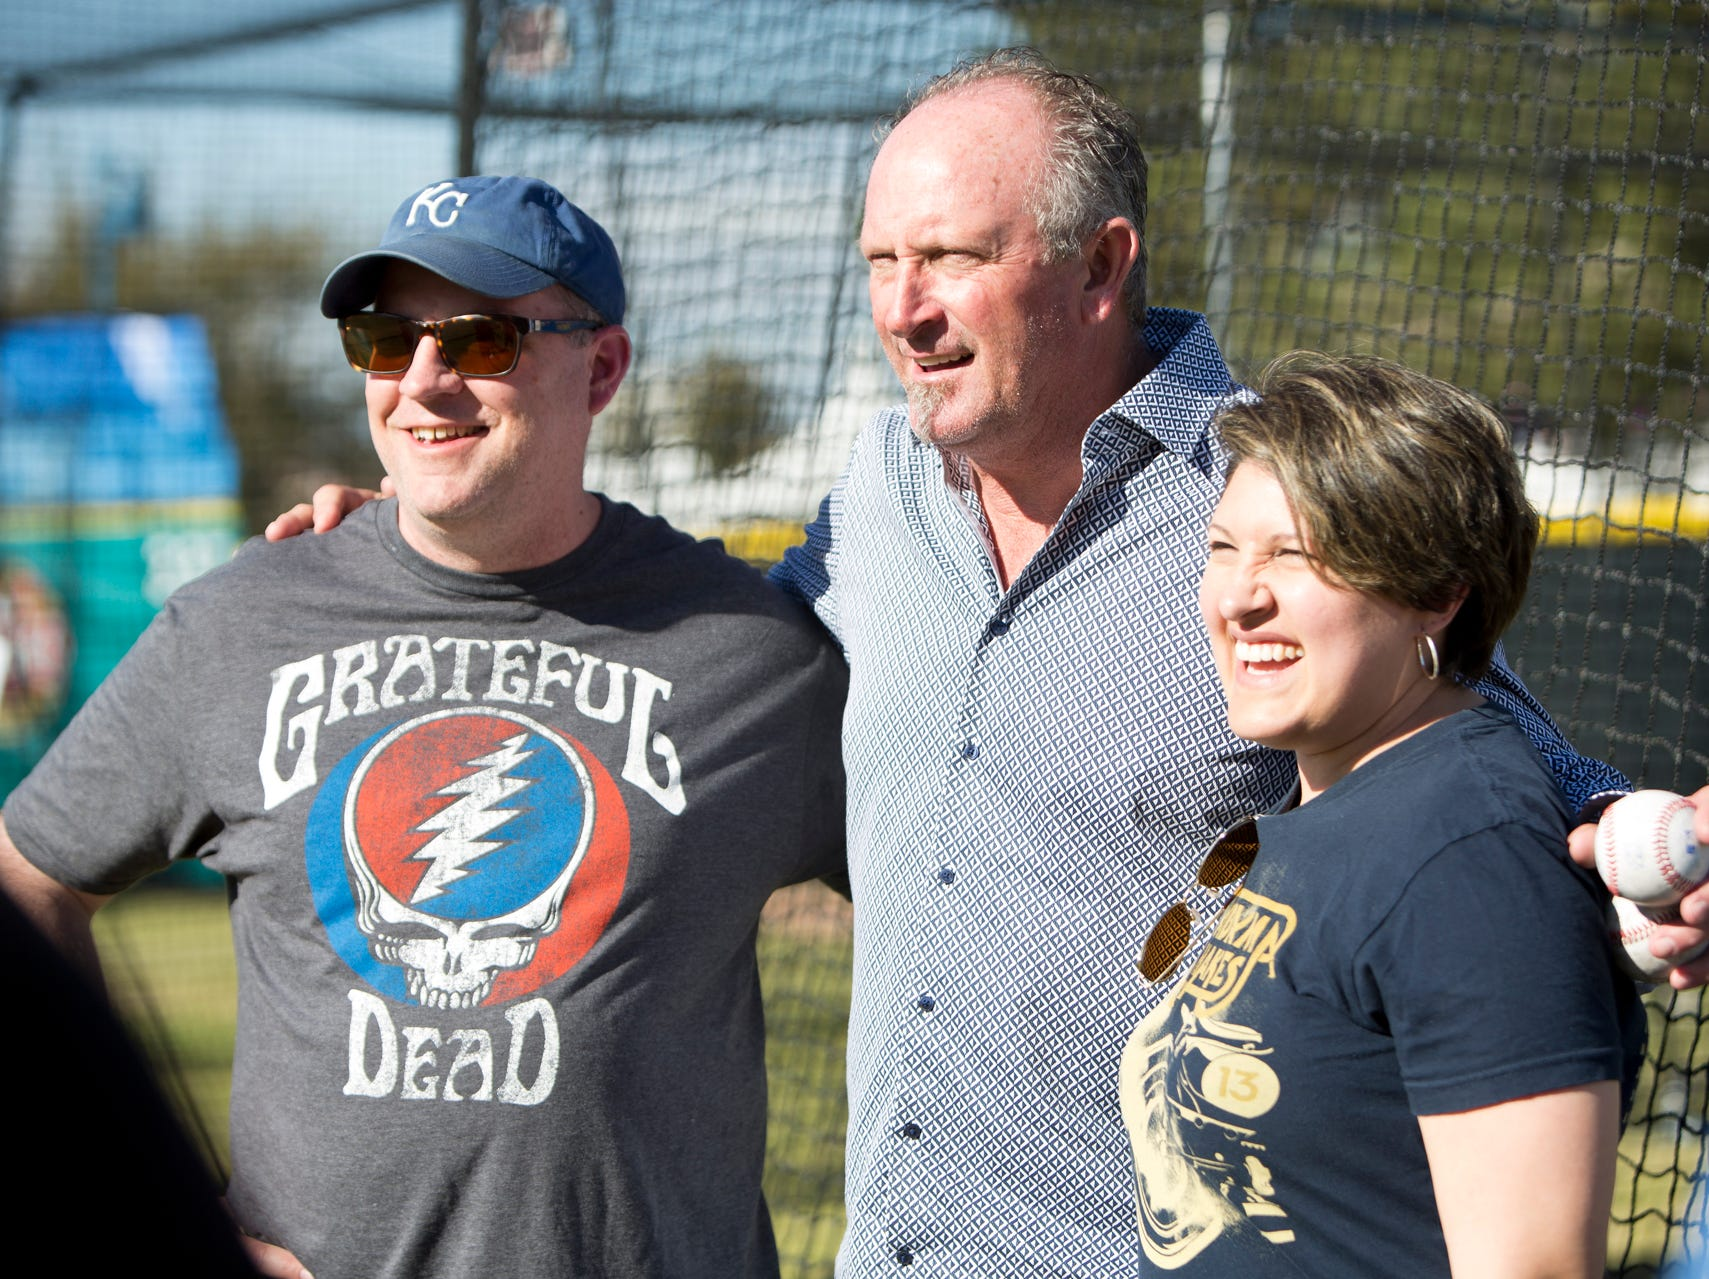 Bret Saberhagen poses with fans for a photo during the Innings Festival on March 2, 2019, at Tempe Beach Park.